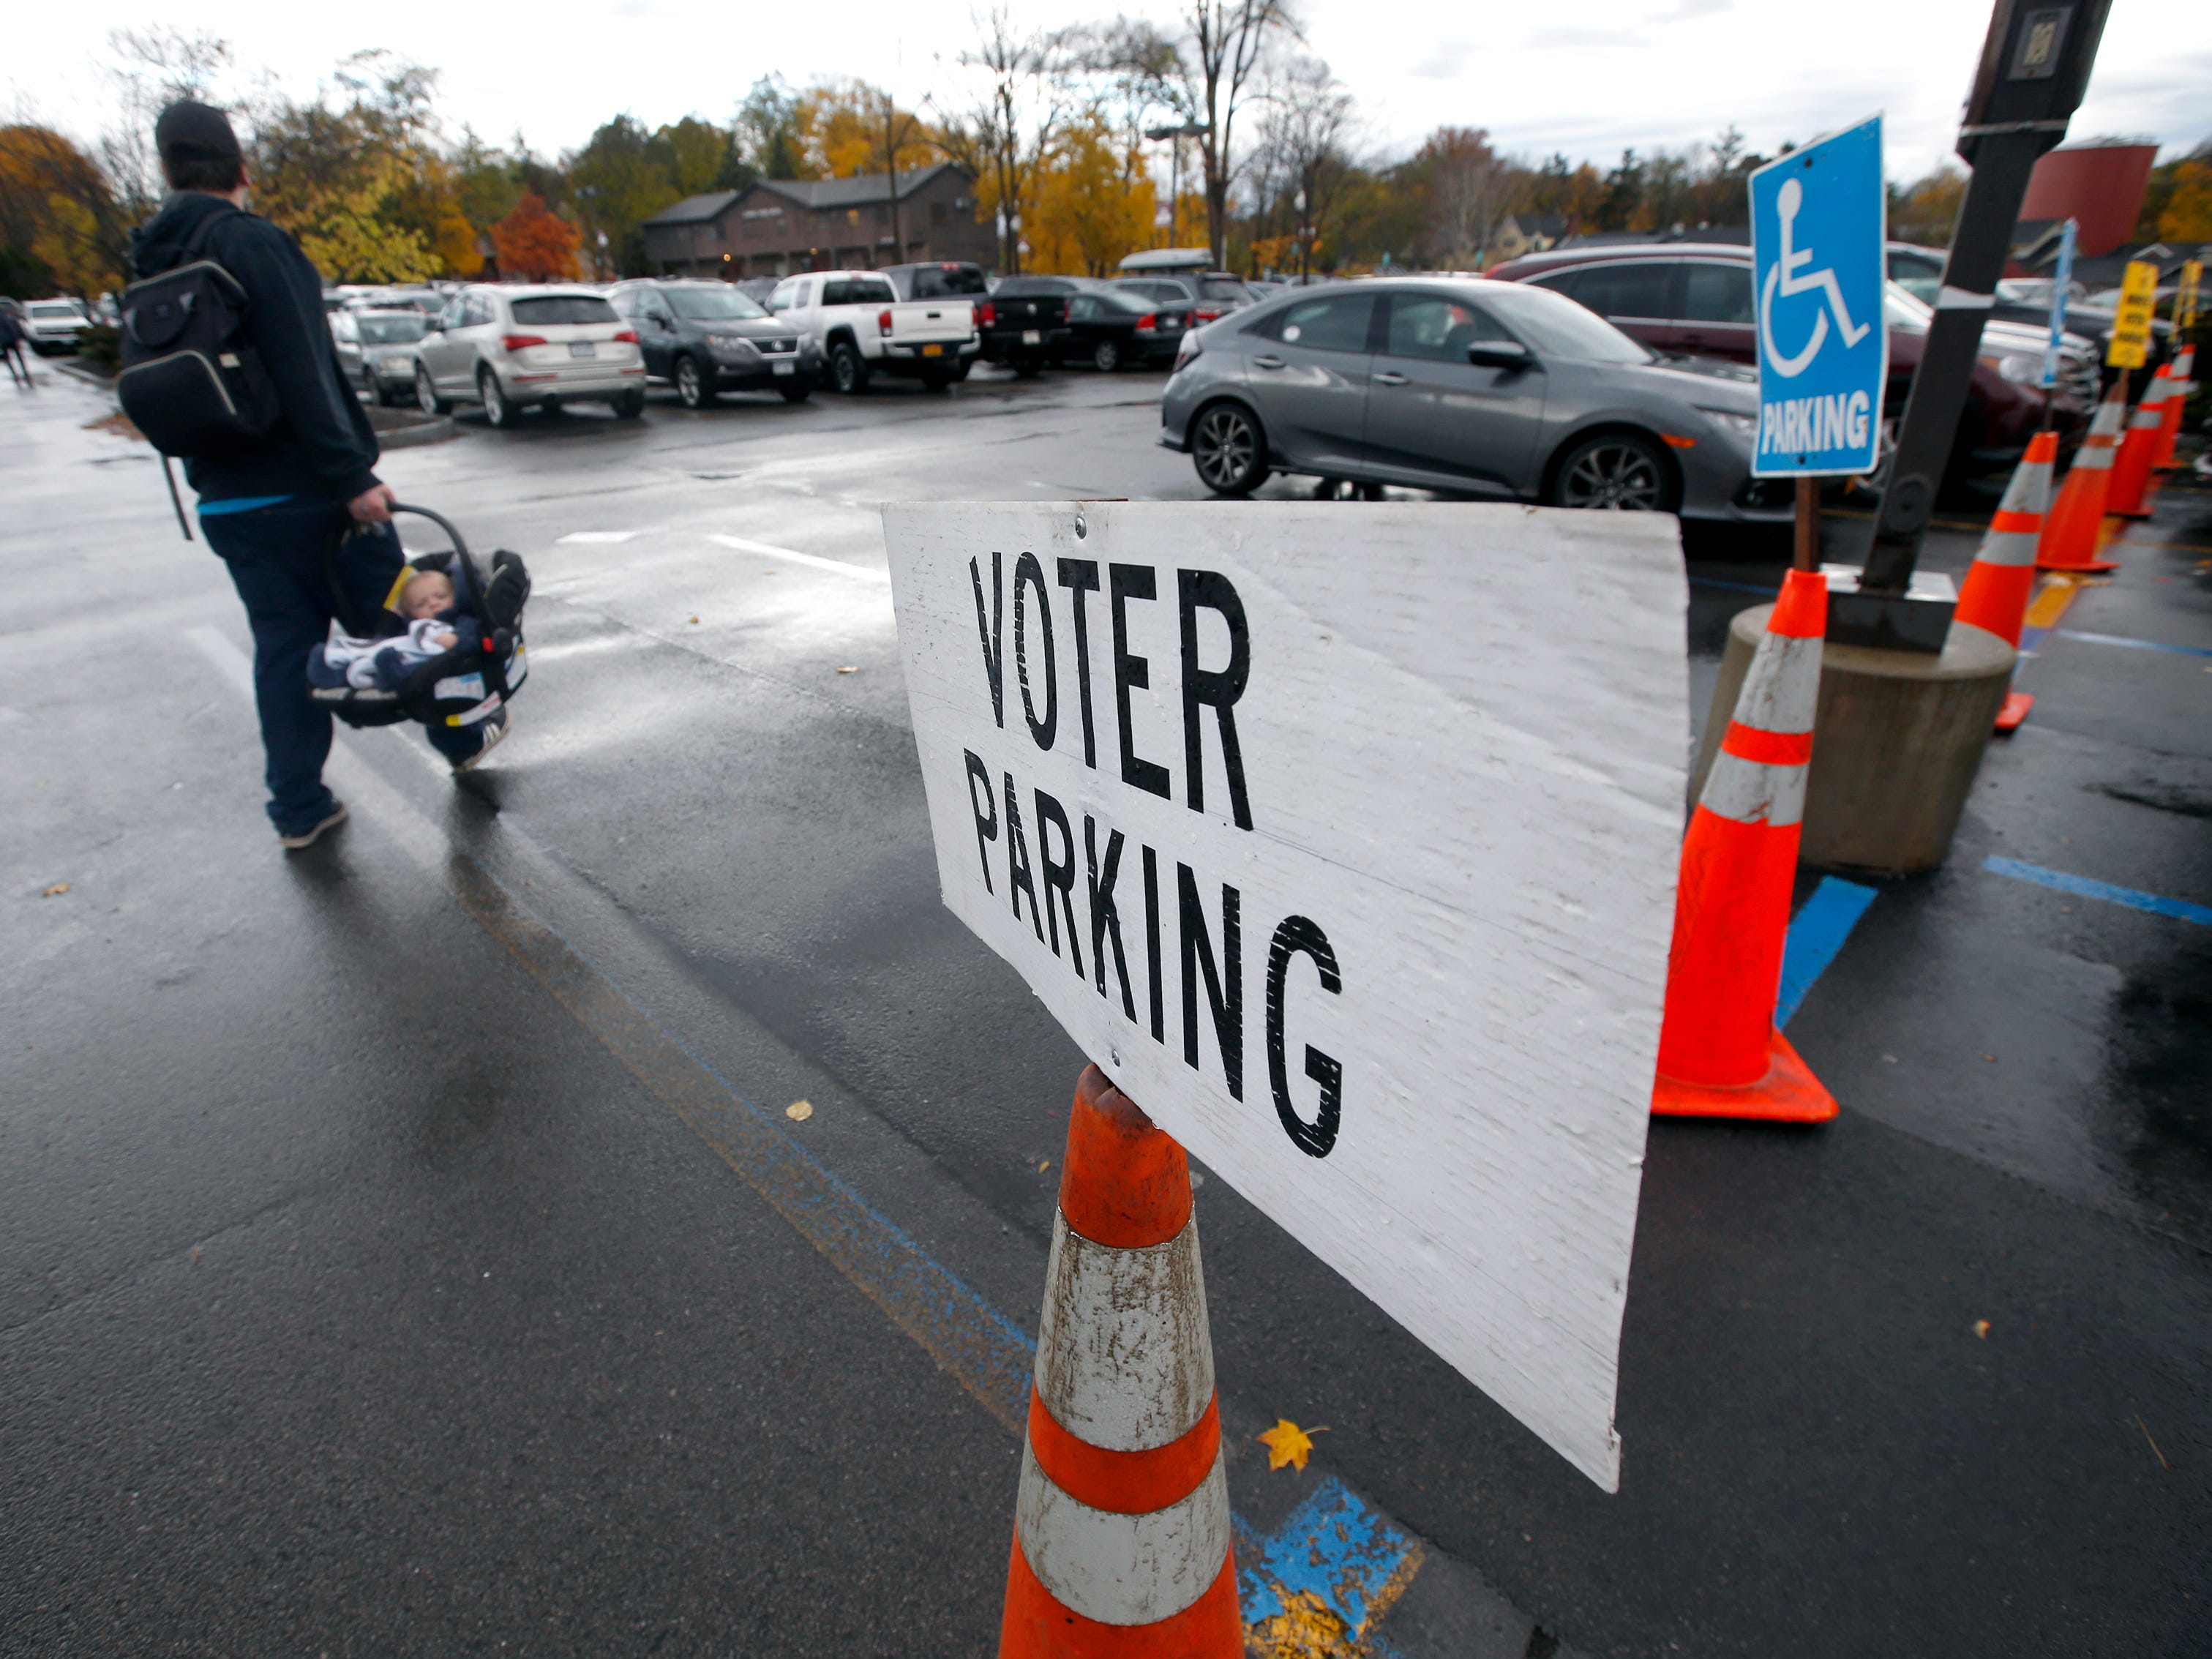 Parking at the Pittsford Community Library voting poll.